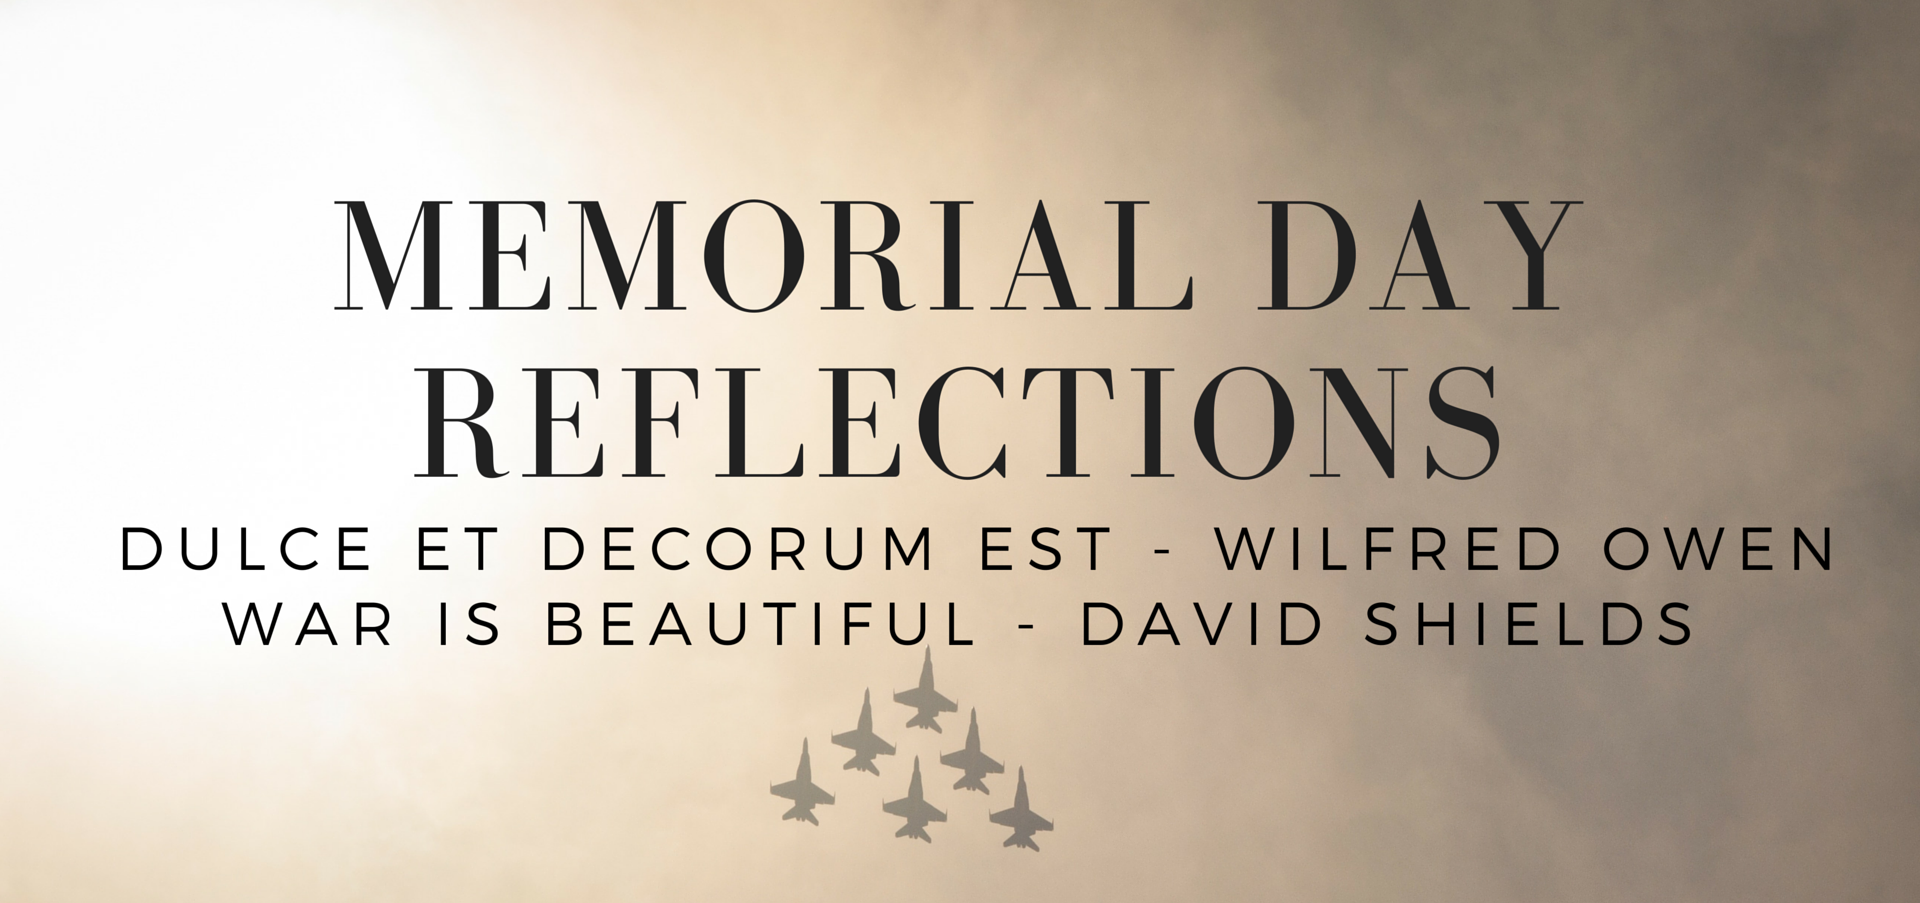 "Memorial Day reflections, with help from Wilfred Owens' poem ""Dulce et Decorum Est"" and David Shields' work ""War is Beautiful"" - read on KateRaeDavis.com"